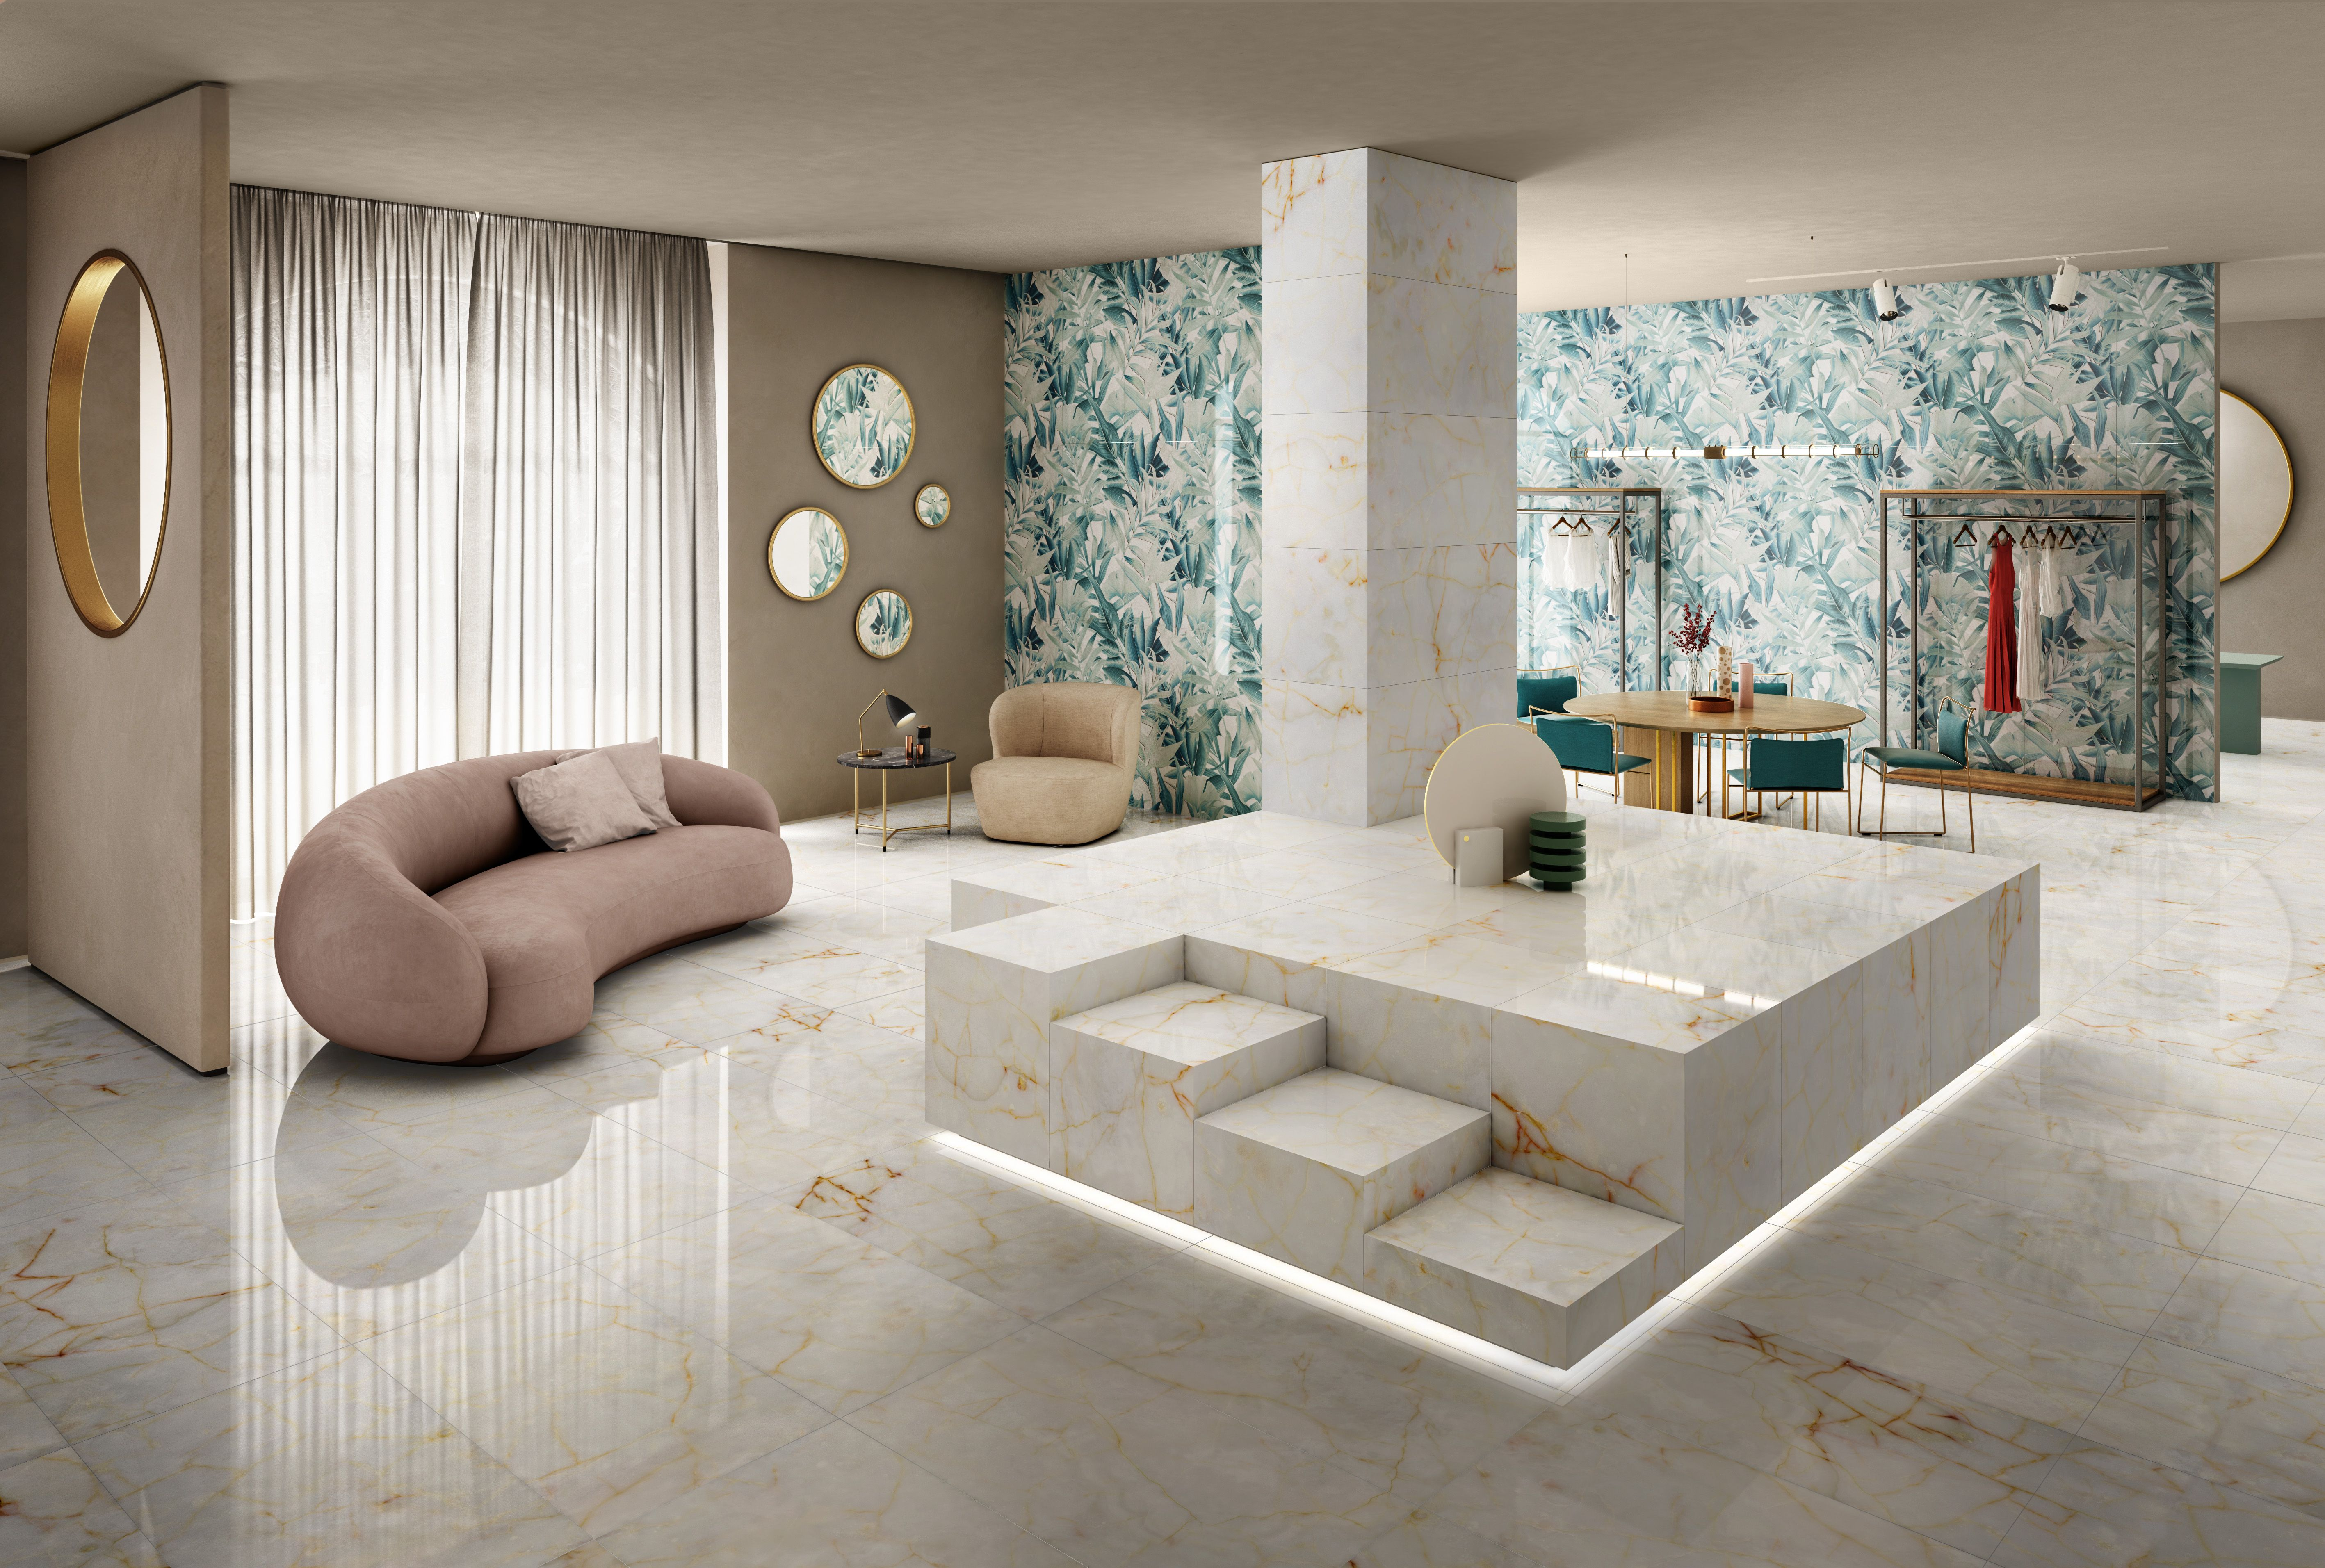 Ceramiche D'arte Elegance Tile Eclectic Elegance Decorations And Refined Textures For The